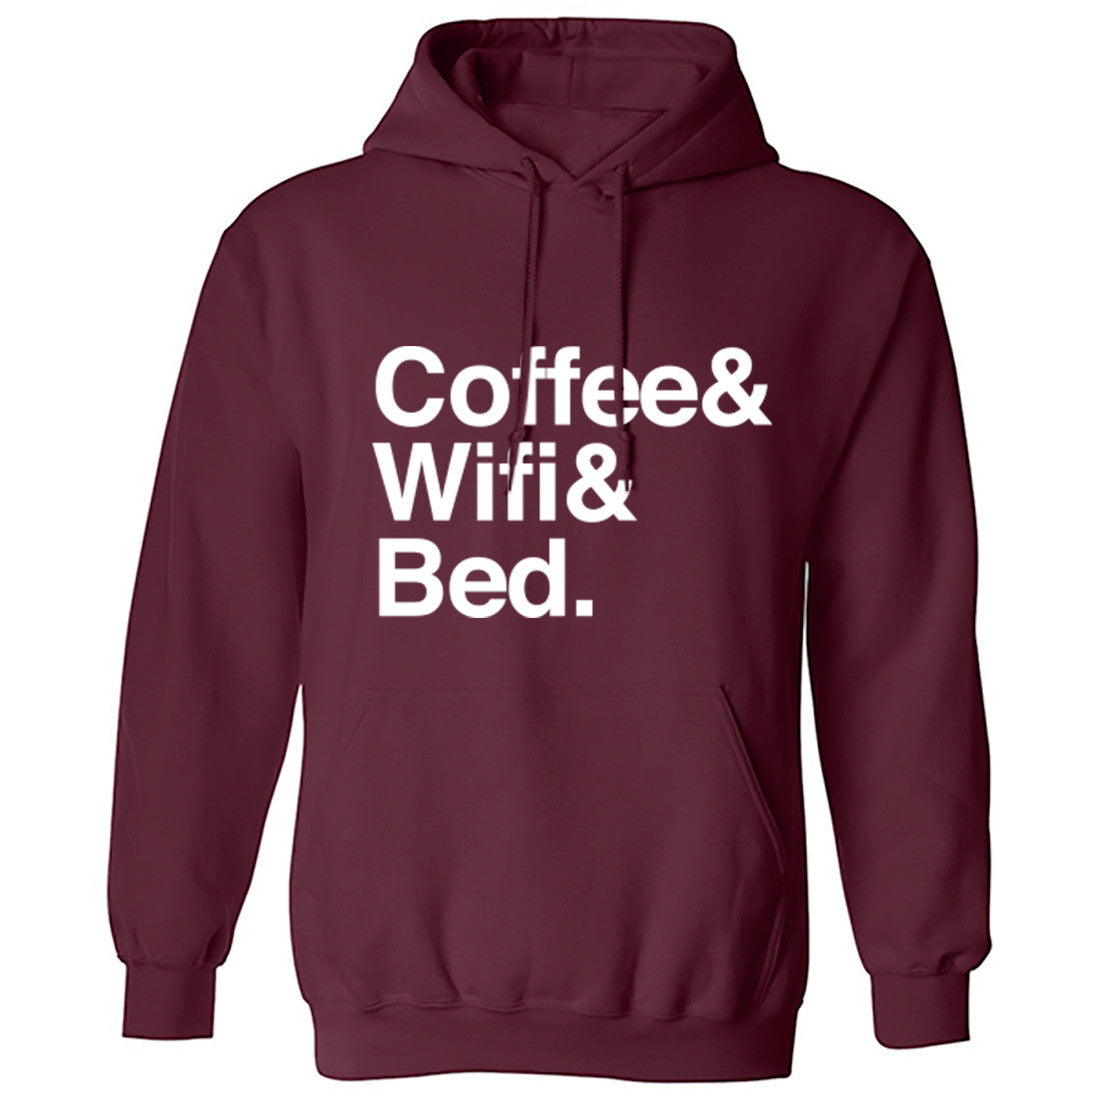 Coffee Wifi Bed Unisex Hoodie K0391 - Illustrated Identity Ltd.